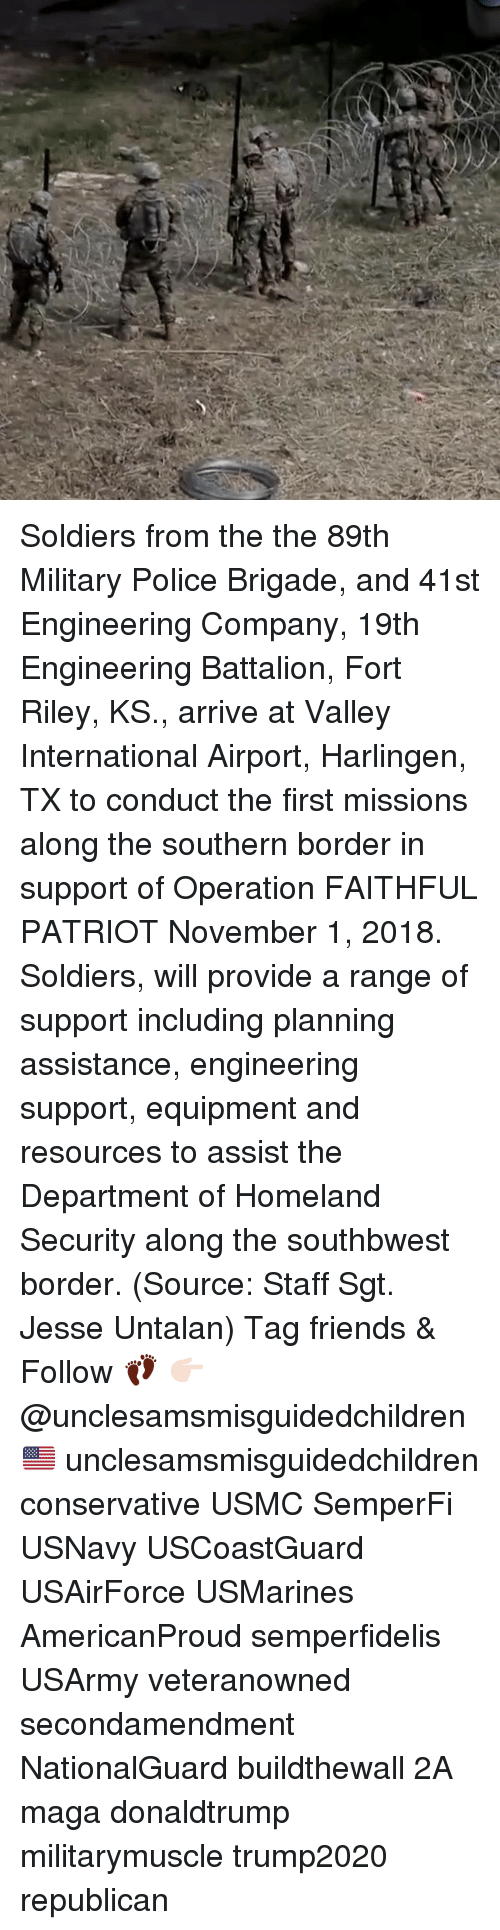 Friends, Memes, and Police: Soldiers from the the 89th Military Police Brigade, and 41st Engineering Company, 19th Engineering Battalion, Fort Riley, KS., arrive at Valley International Airport, Harlingen, TX to conduct the first missions along the southern border in support of Operation FAITHFUL PATRIOT November 1, 2018. Soldiers, will provide a range of support including planning assistance, engineering support, equipment and resources to assist the Department of Homeland Security along the southbwest border. (Source: Staff Sgt. Jesse Untalan) Tag friends & Follow 👣 👉🏻 @unclesamsmisguidedchildren 🇺🇸 unclesamsmisguidedchildren conservative USMC SemperFi USNavy USCoastGuard USAirForce USMarines AmericanProud semperfidelis USArmy veteranowned secondamendment NationalGuard buildthewall 2A maga donaldtrump militarymuscle trump2020 republican